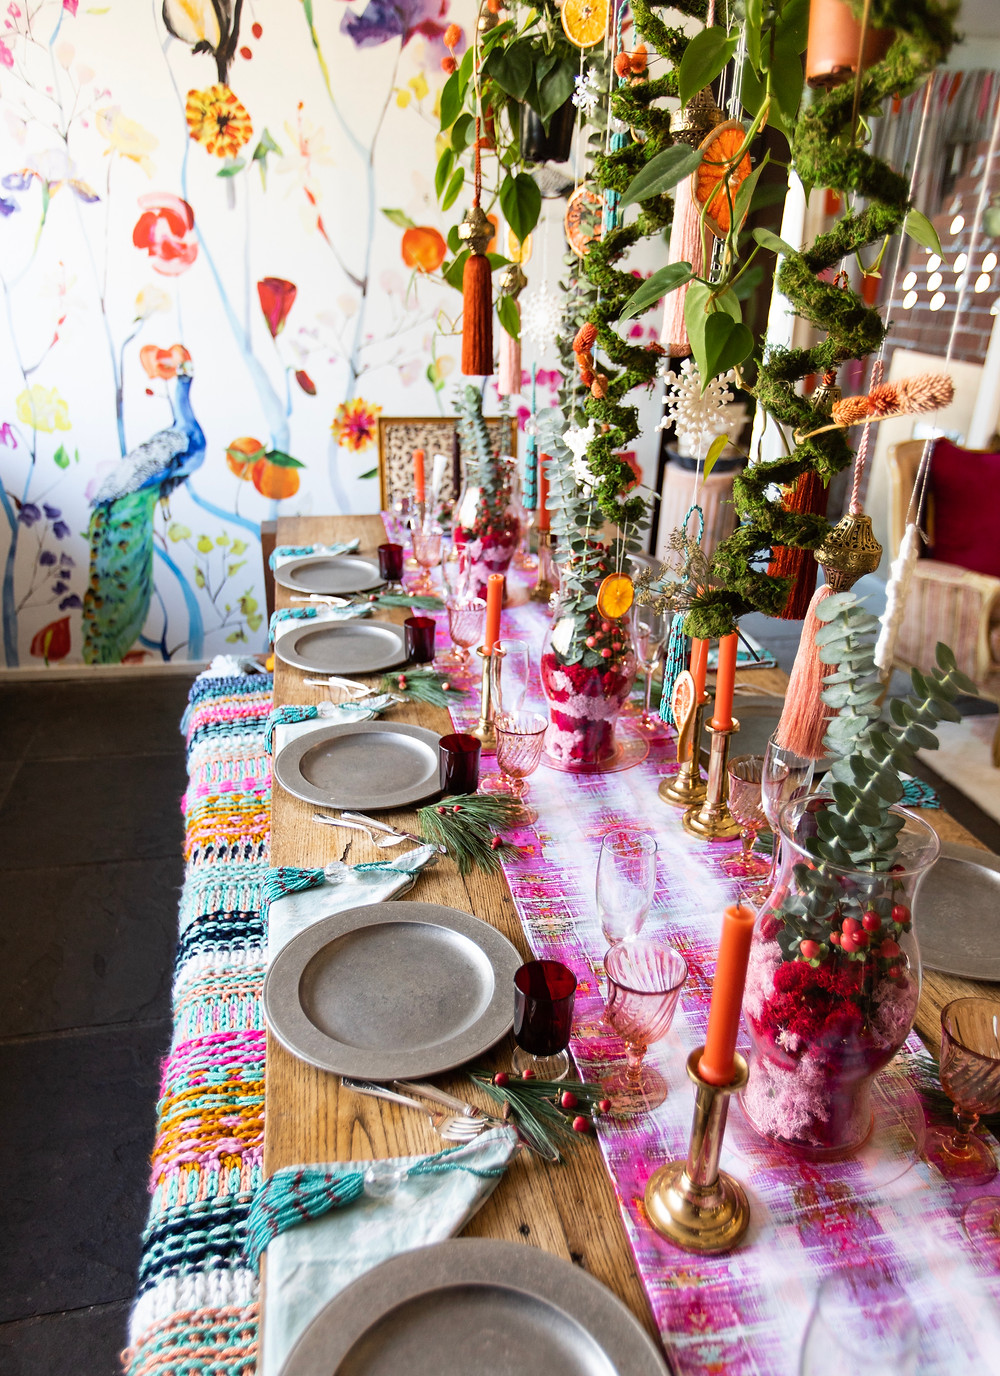 Hanging moss over holiday table set up with pink runner and floral wallpaper